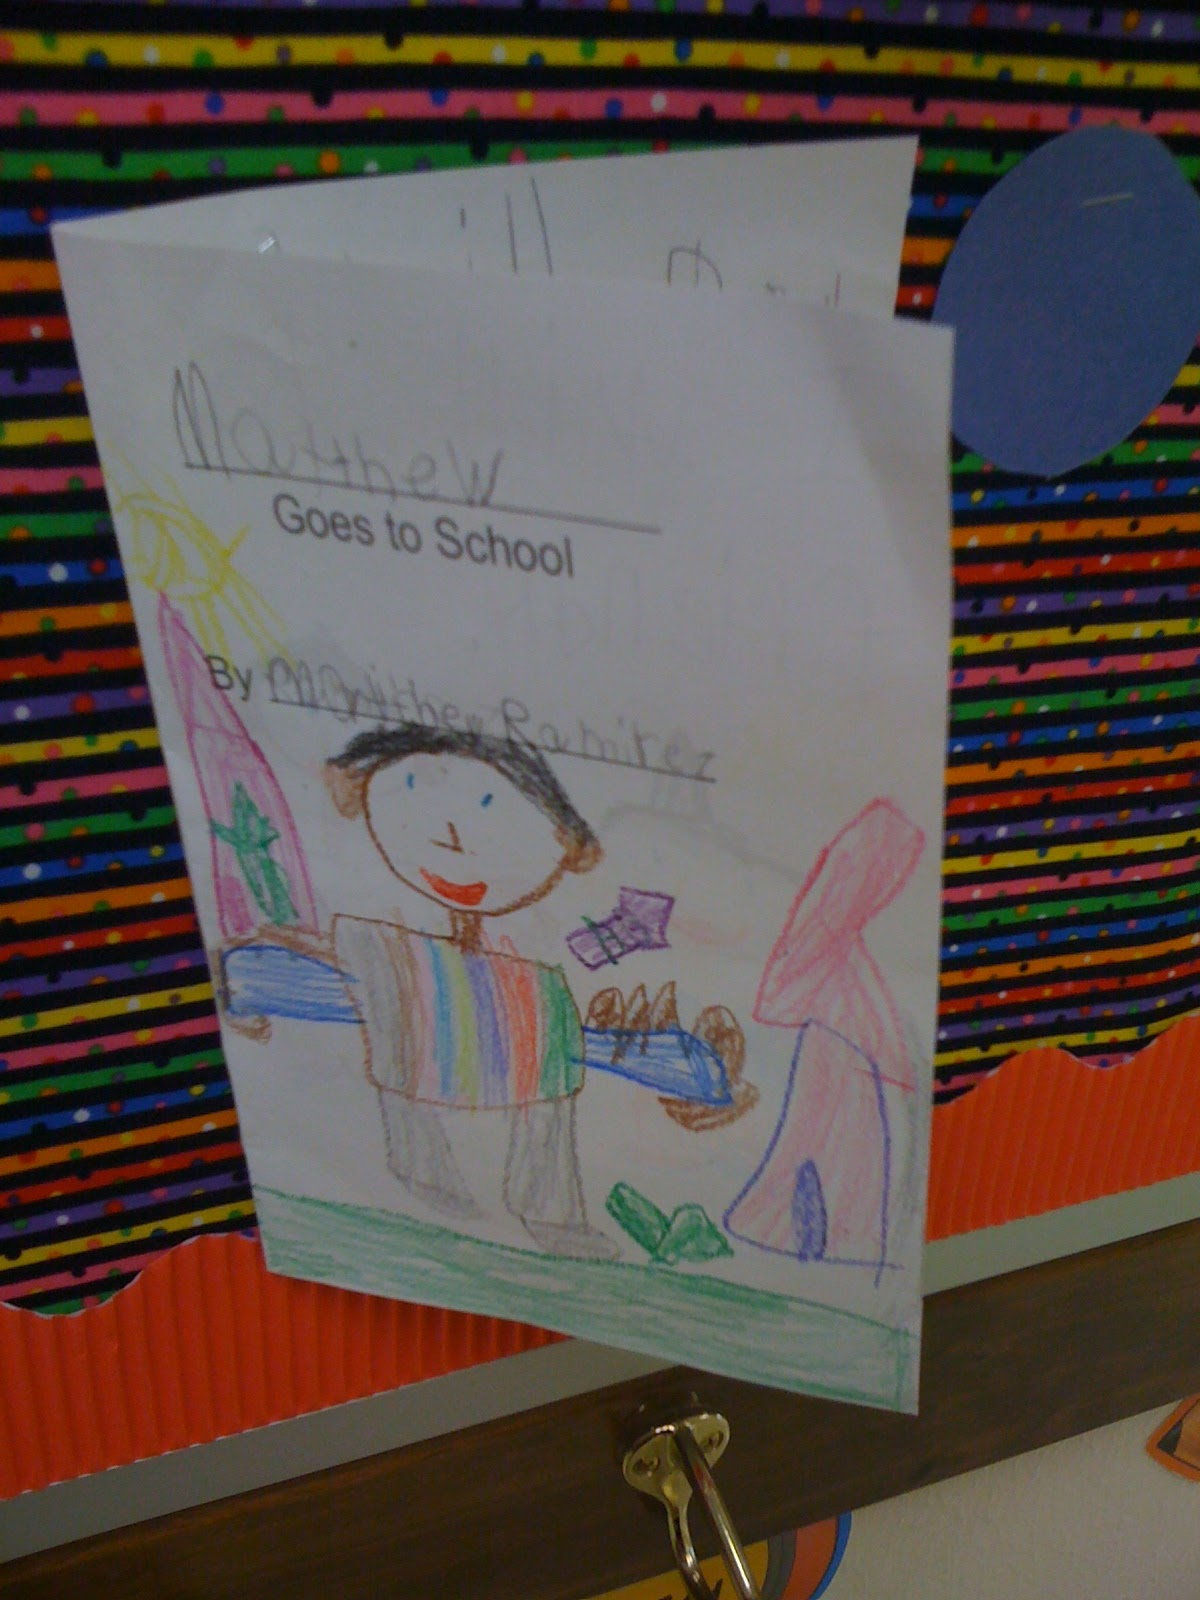 Bishop S Blackboard An Elementary Education Blog David Goes To School